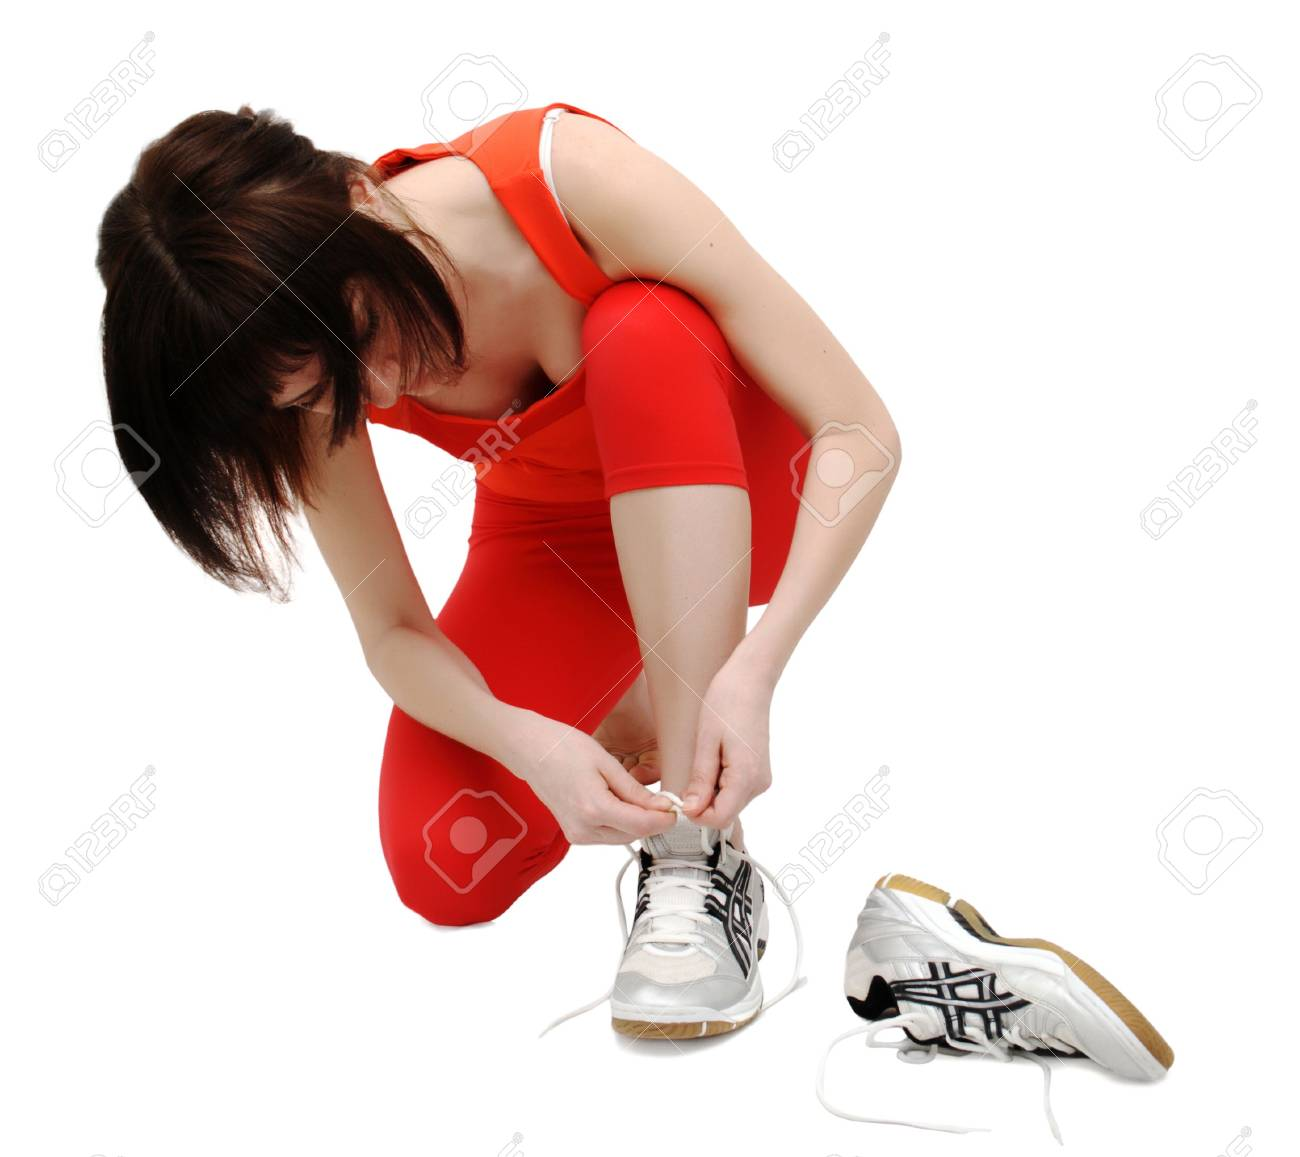 Woman getting ready for a run Stock Photo - 4832756